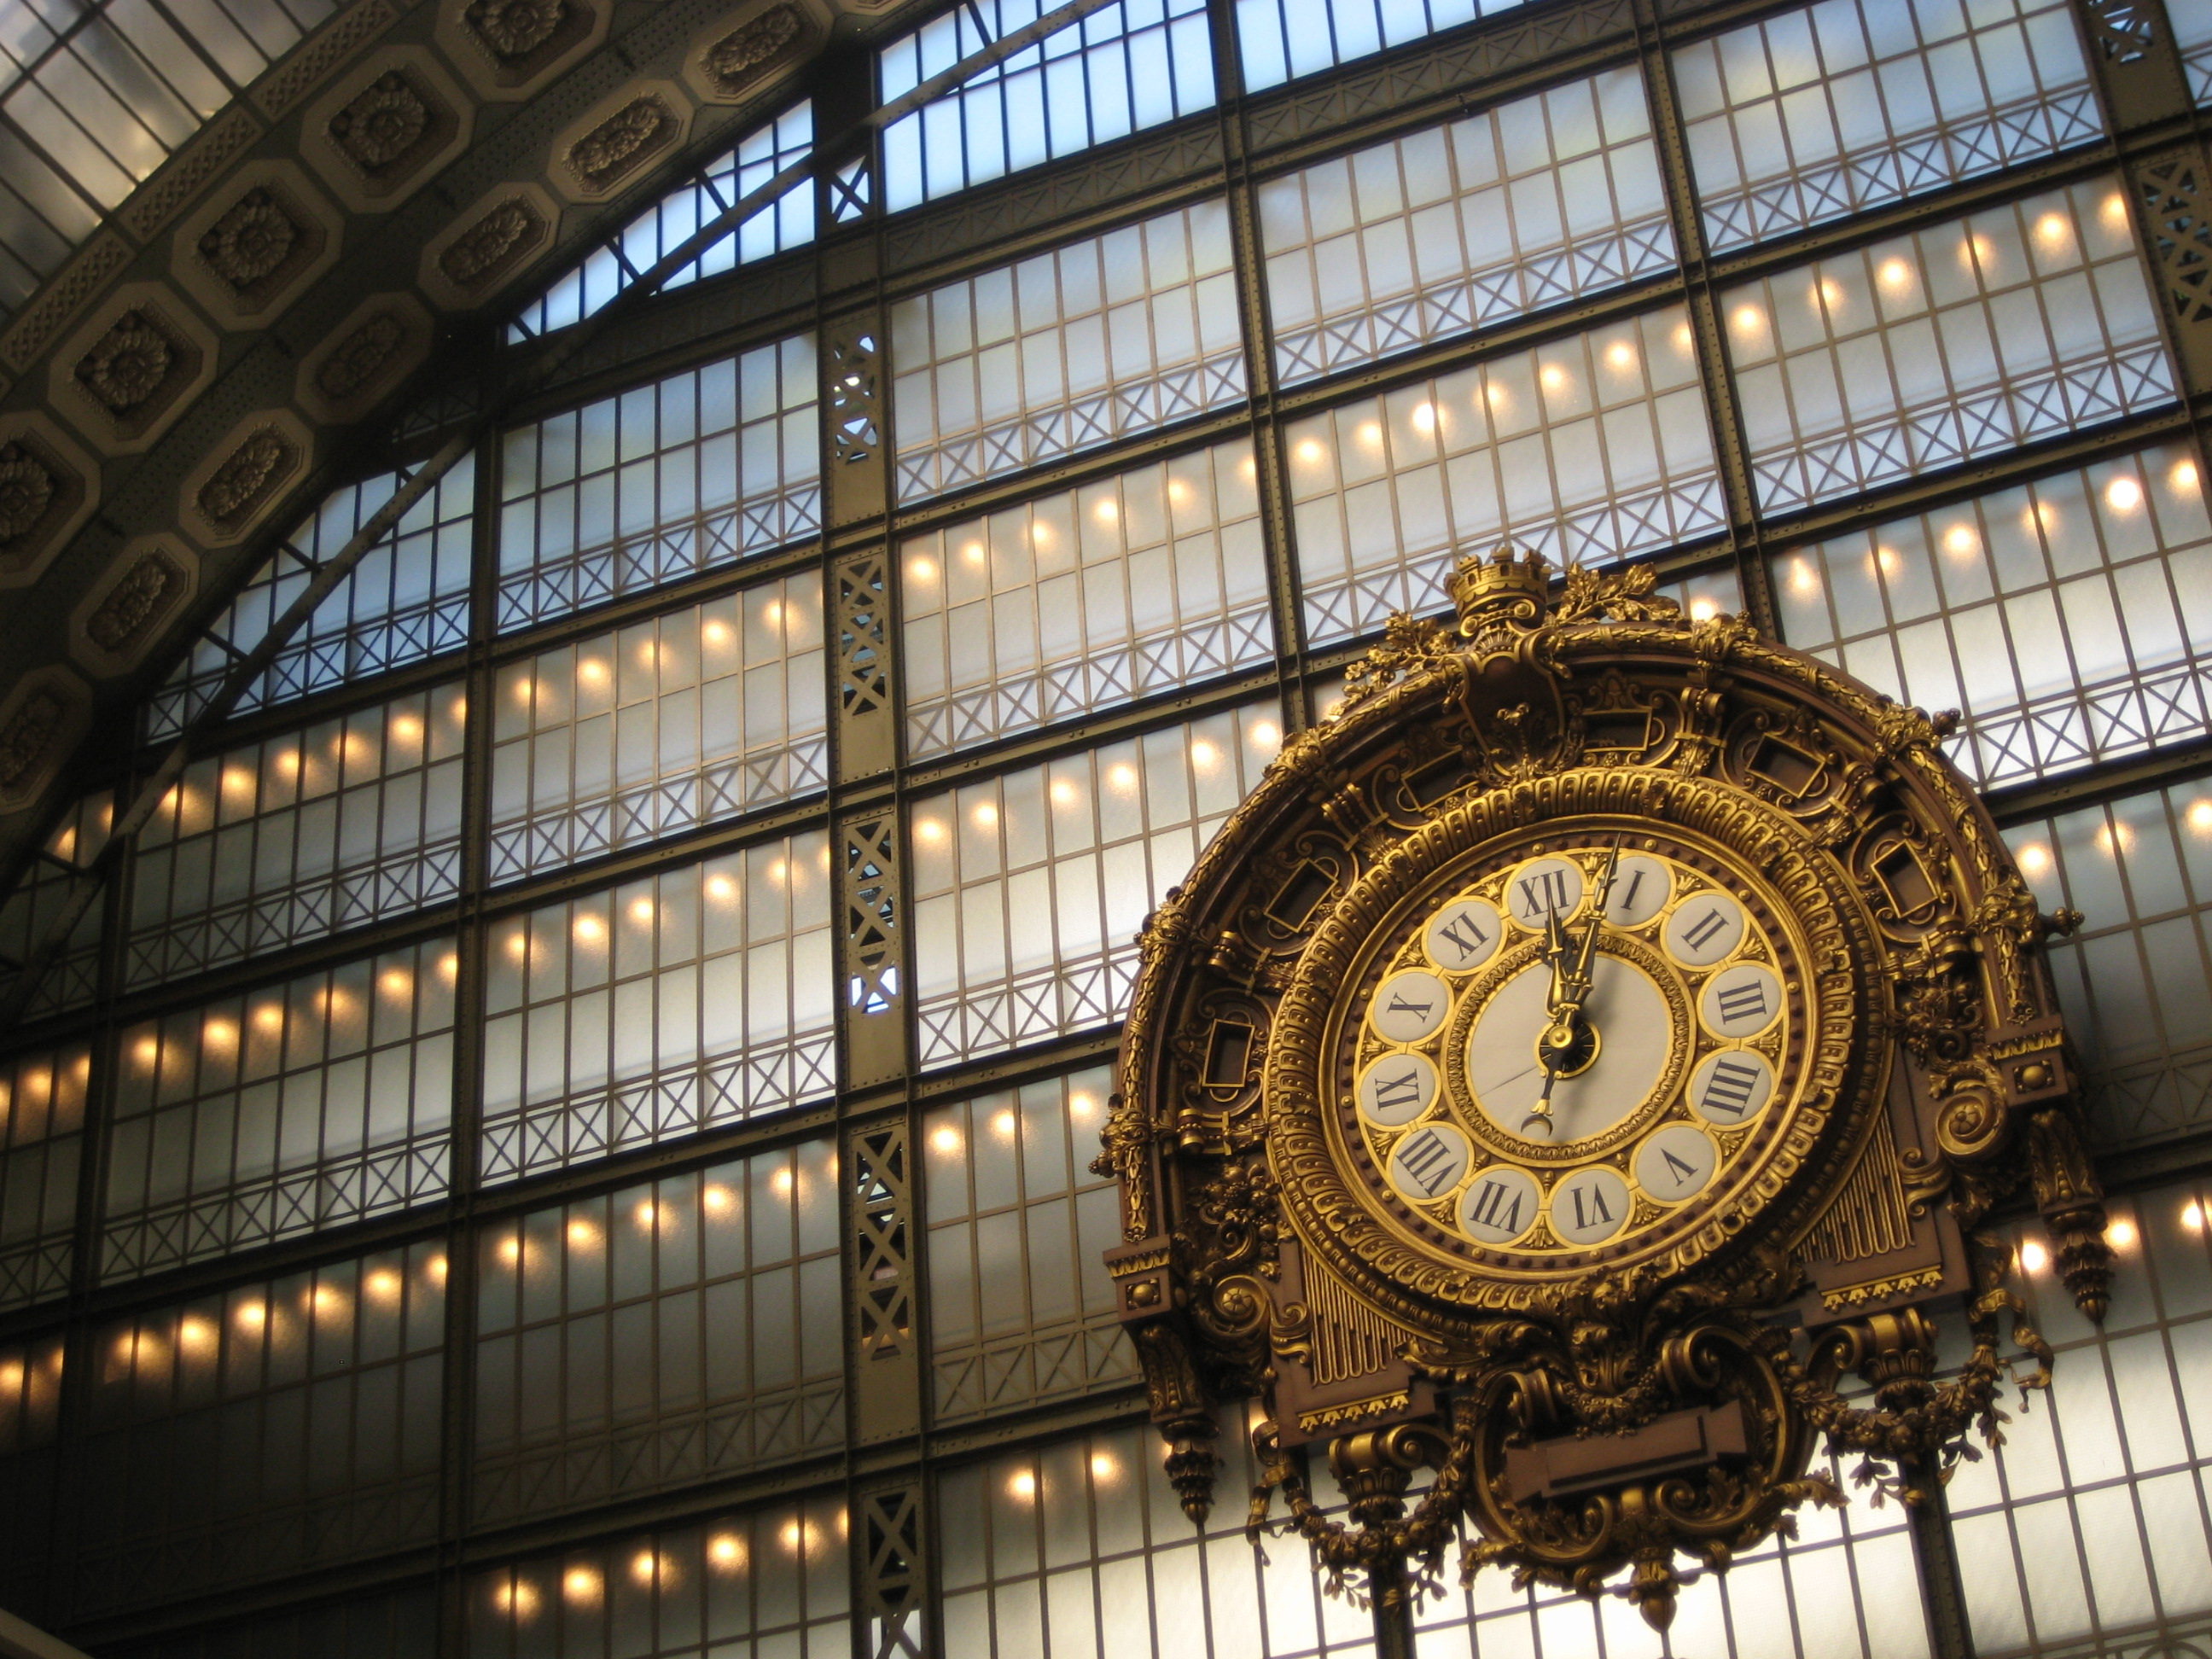 Tuesday at the Musee D'Orsay